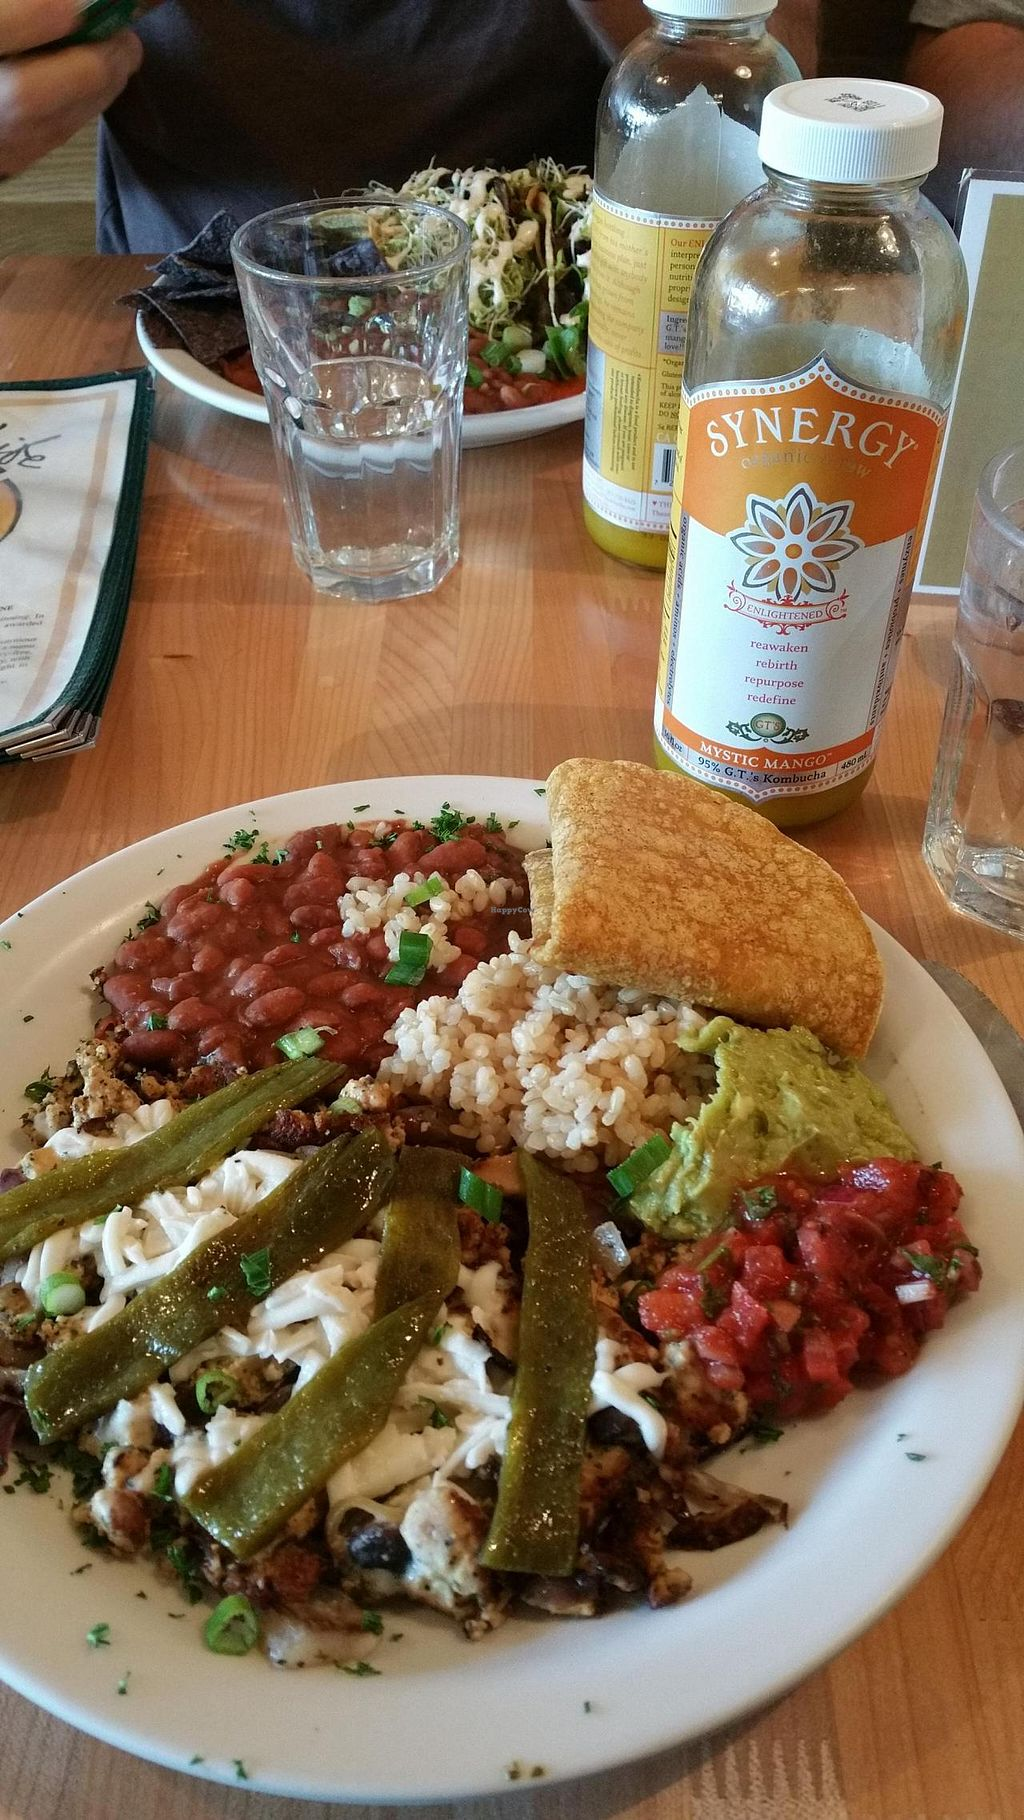 """Photo of Slice of Life  by <a href=""""/members/profile/drdebnmd"""">drdebnmd</a> <br/>Yummy tofu rancheros! <br/> April 11, 2015  - <a href='/contact/abuse/image/1583/98656'>Report</a>"""